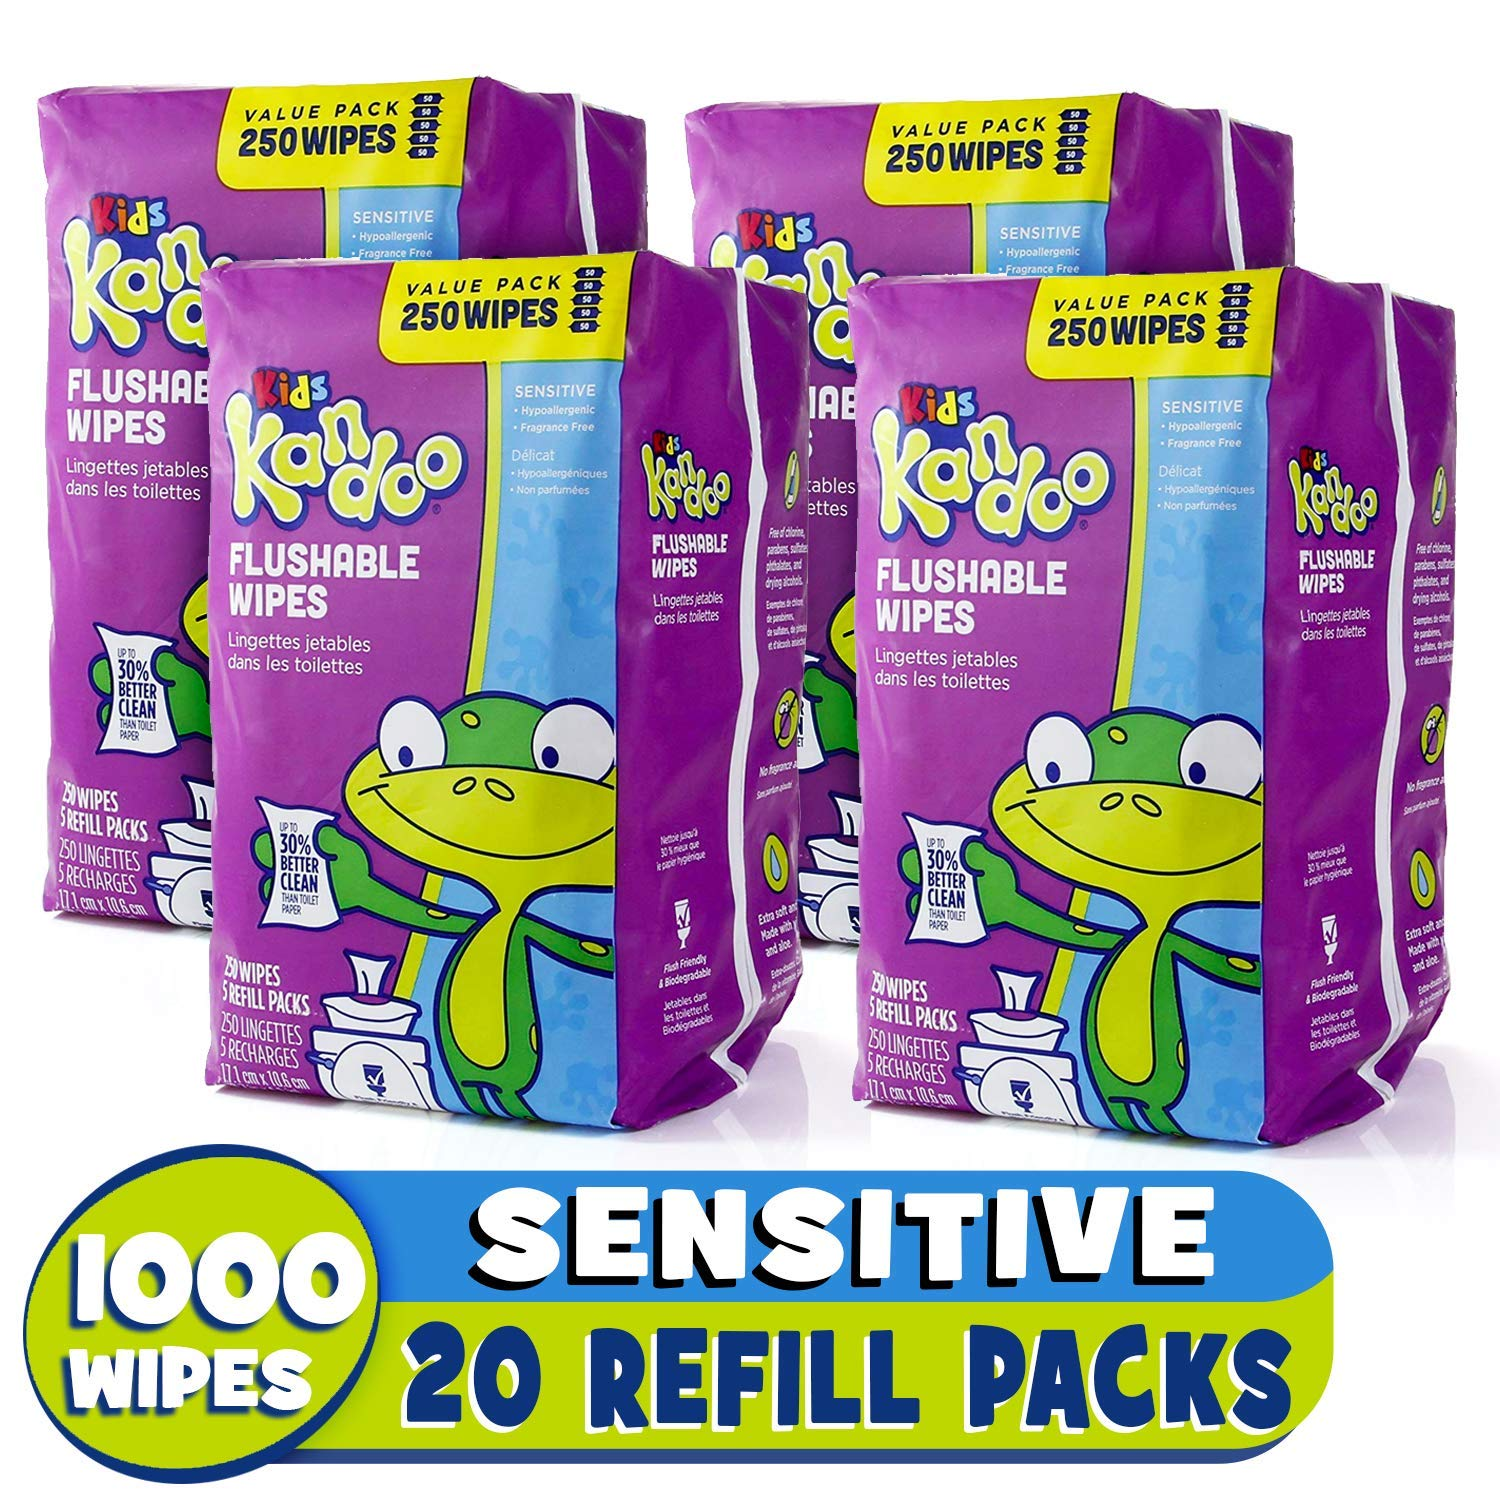 Kandoo Flushable Sensitive Wipes, 250 Count Refills, by Kandoo   B006KYCZ4O